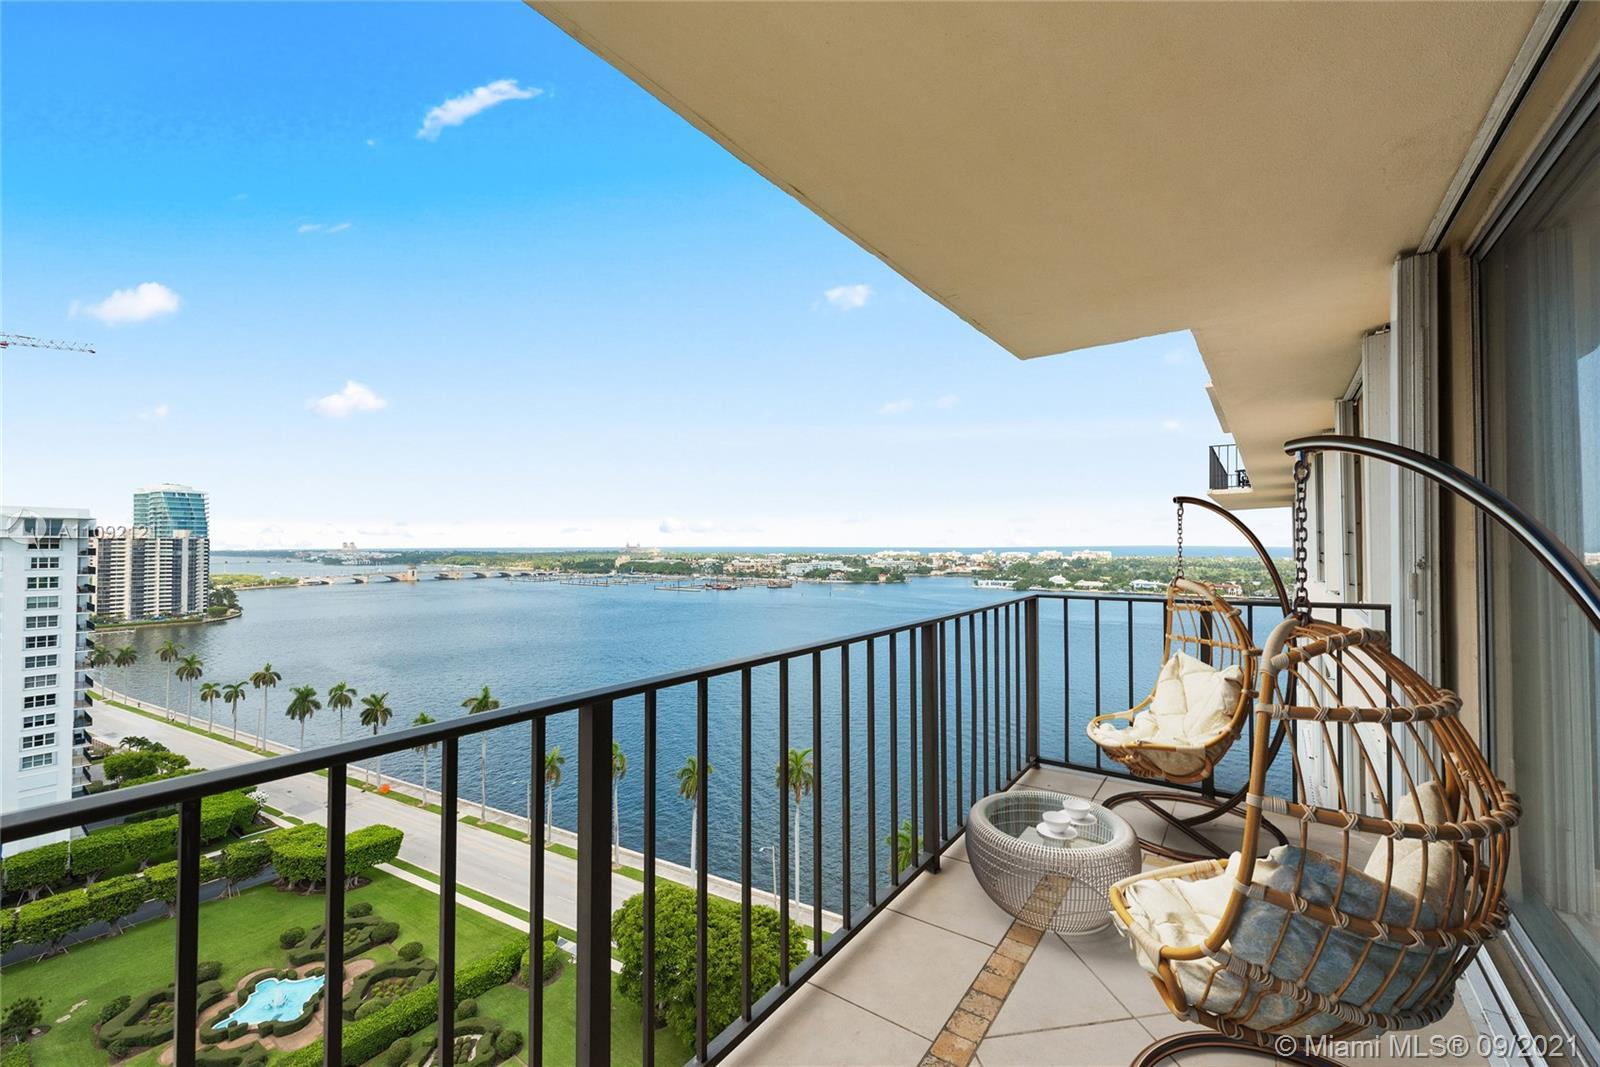 Welcome to your next FL waterfront condo with view of the Intracoastal, Palm Beach Island and the Ci